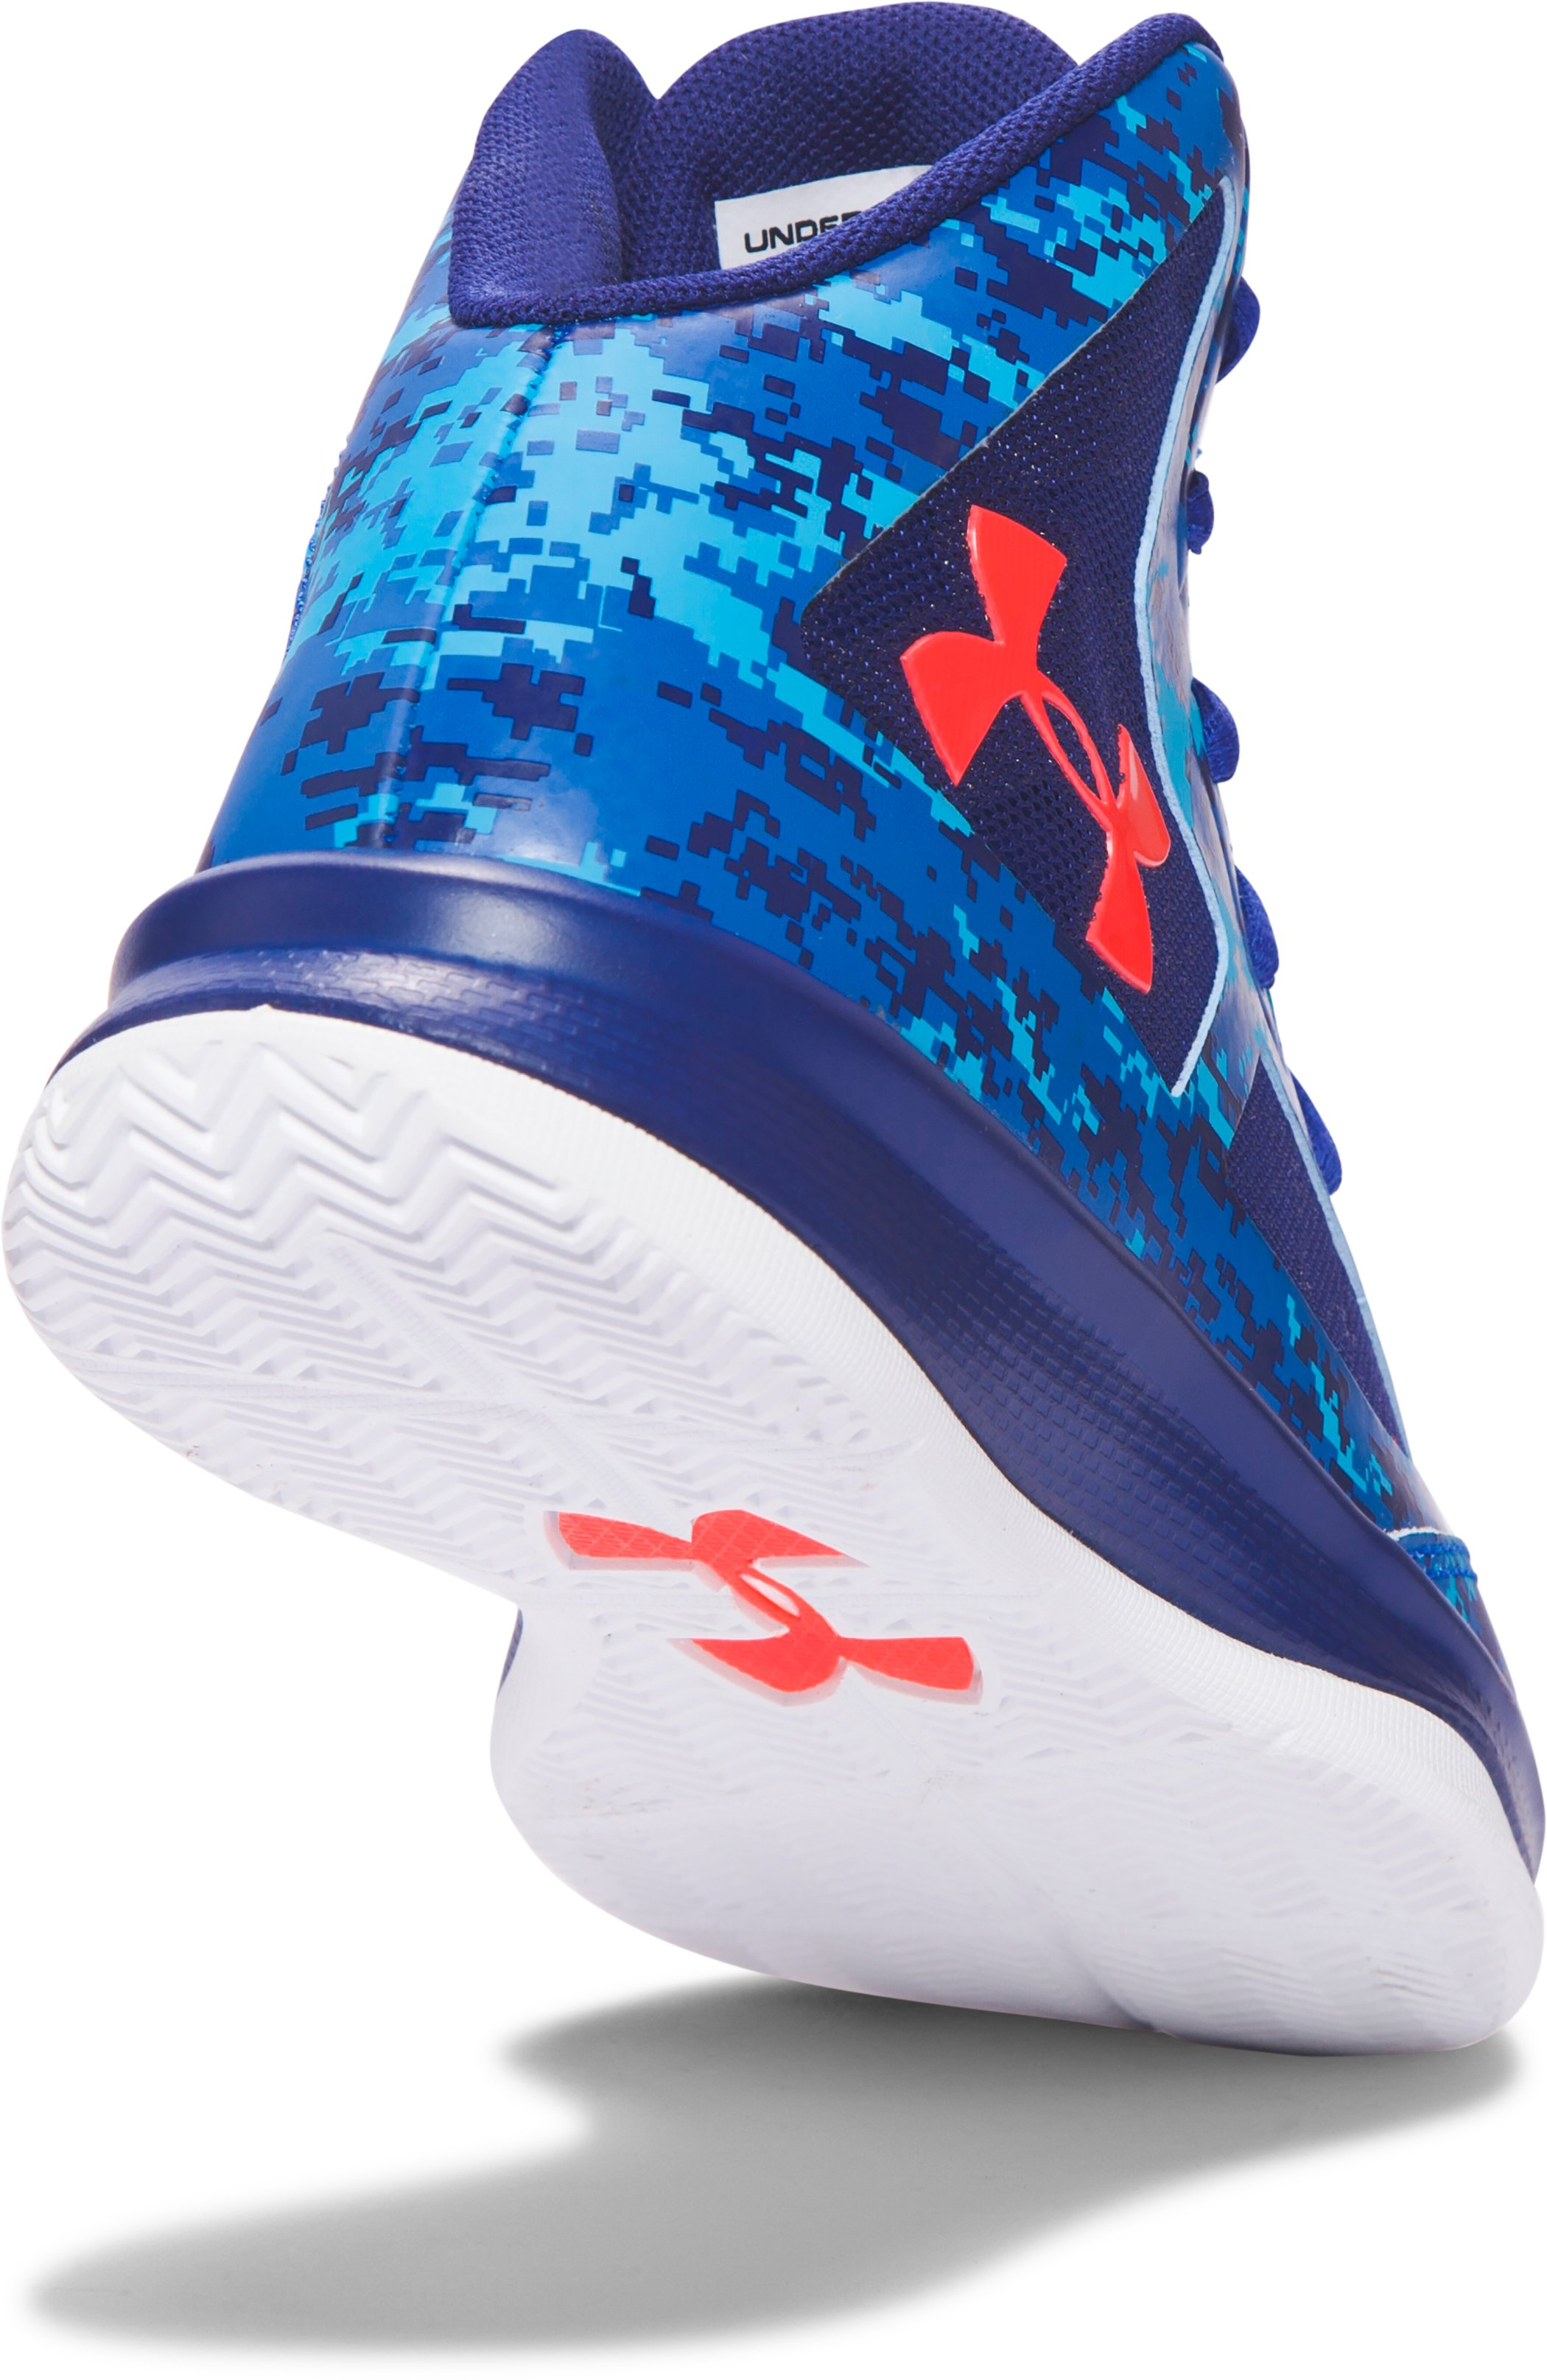 Boys' Pre-School UA Lightning Basketball Shoes, ULTRA BLUE, undefined